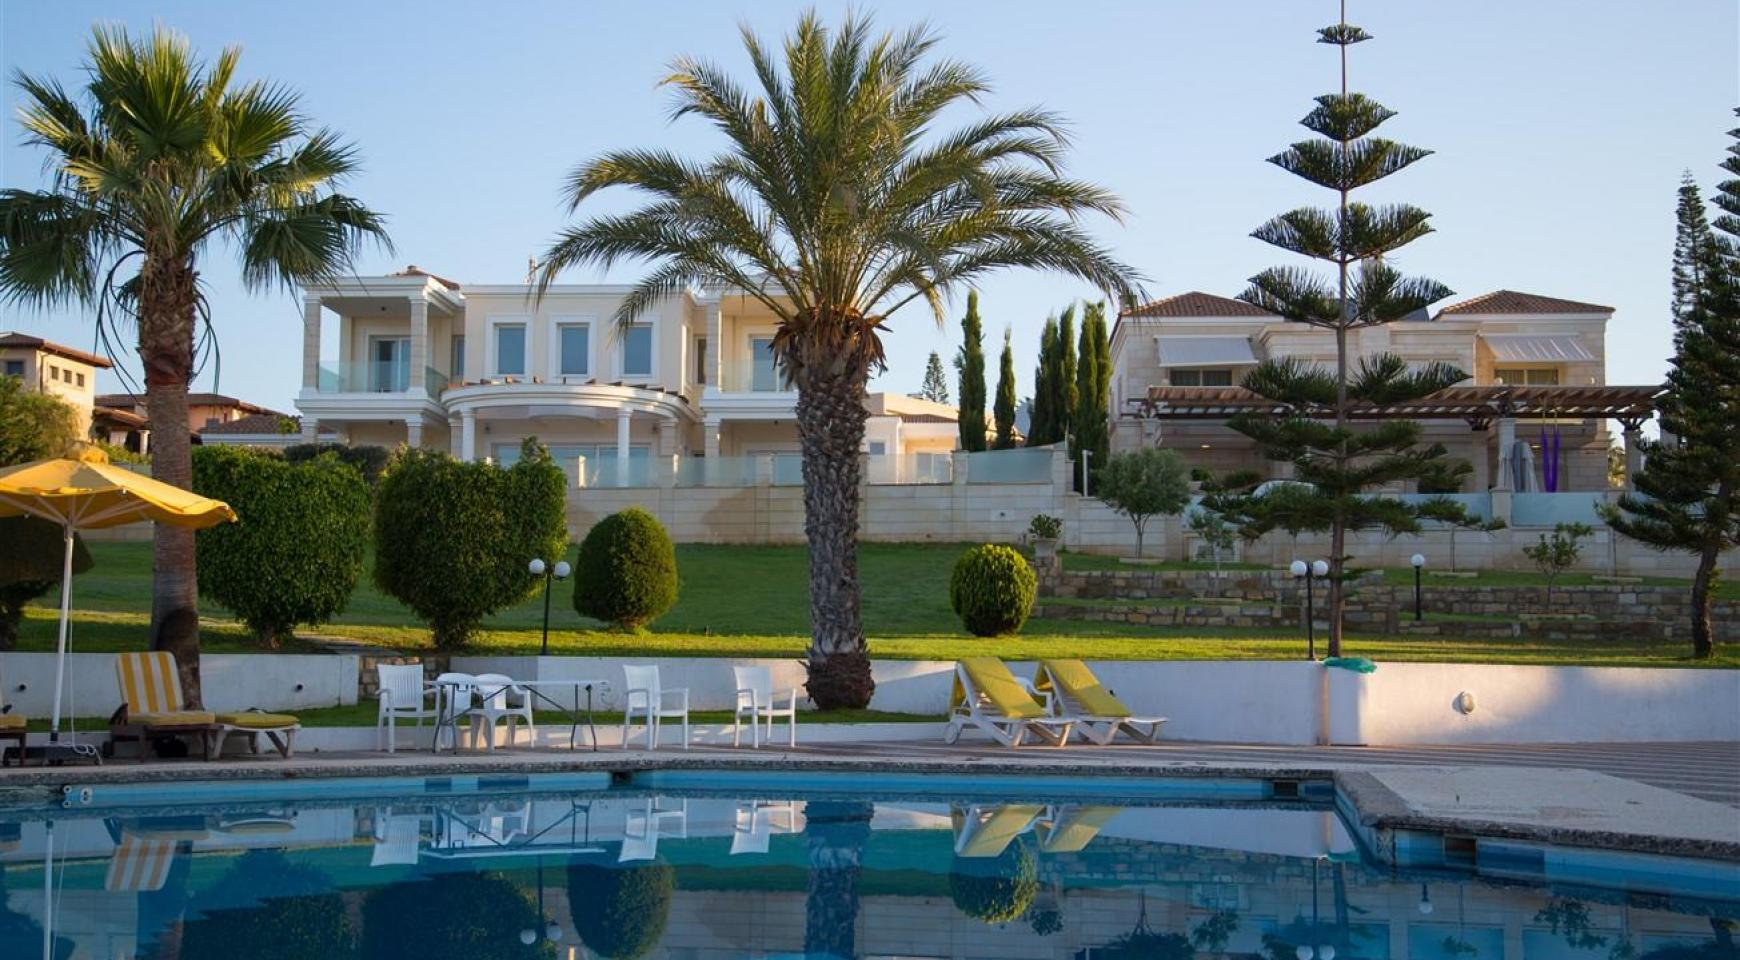 Luxury 3 Bedroom Apartment Thera 102 by the Sea - 1